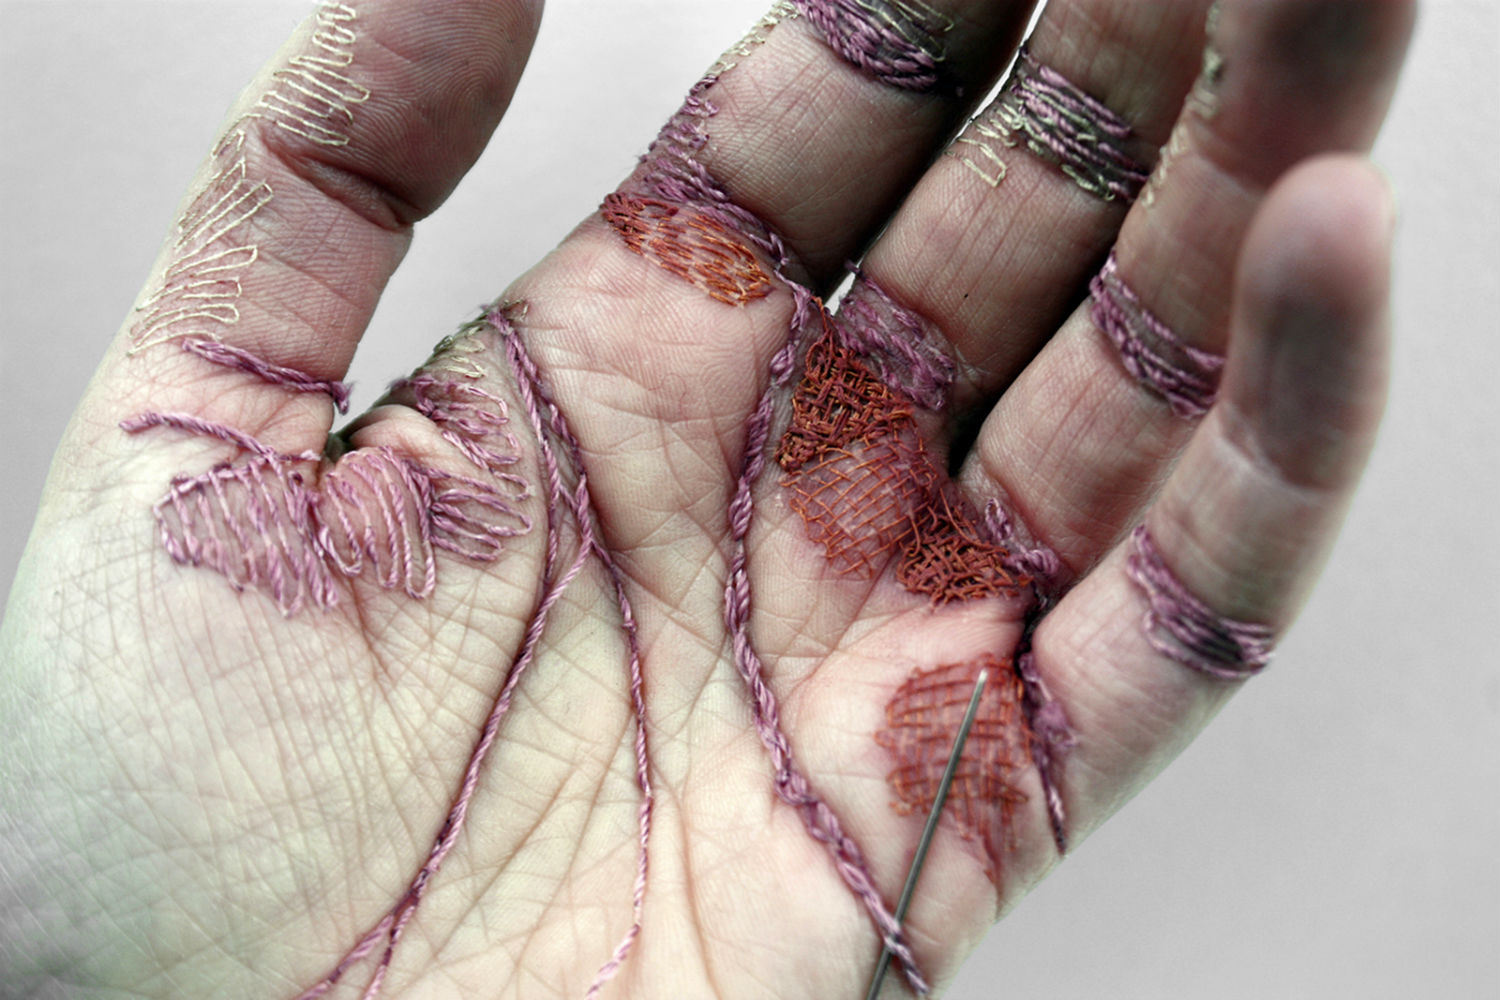 eliza bennett a woman's work is never done thread blood scars hand photography